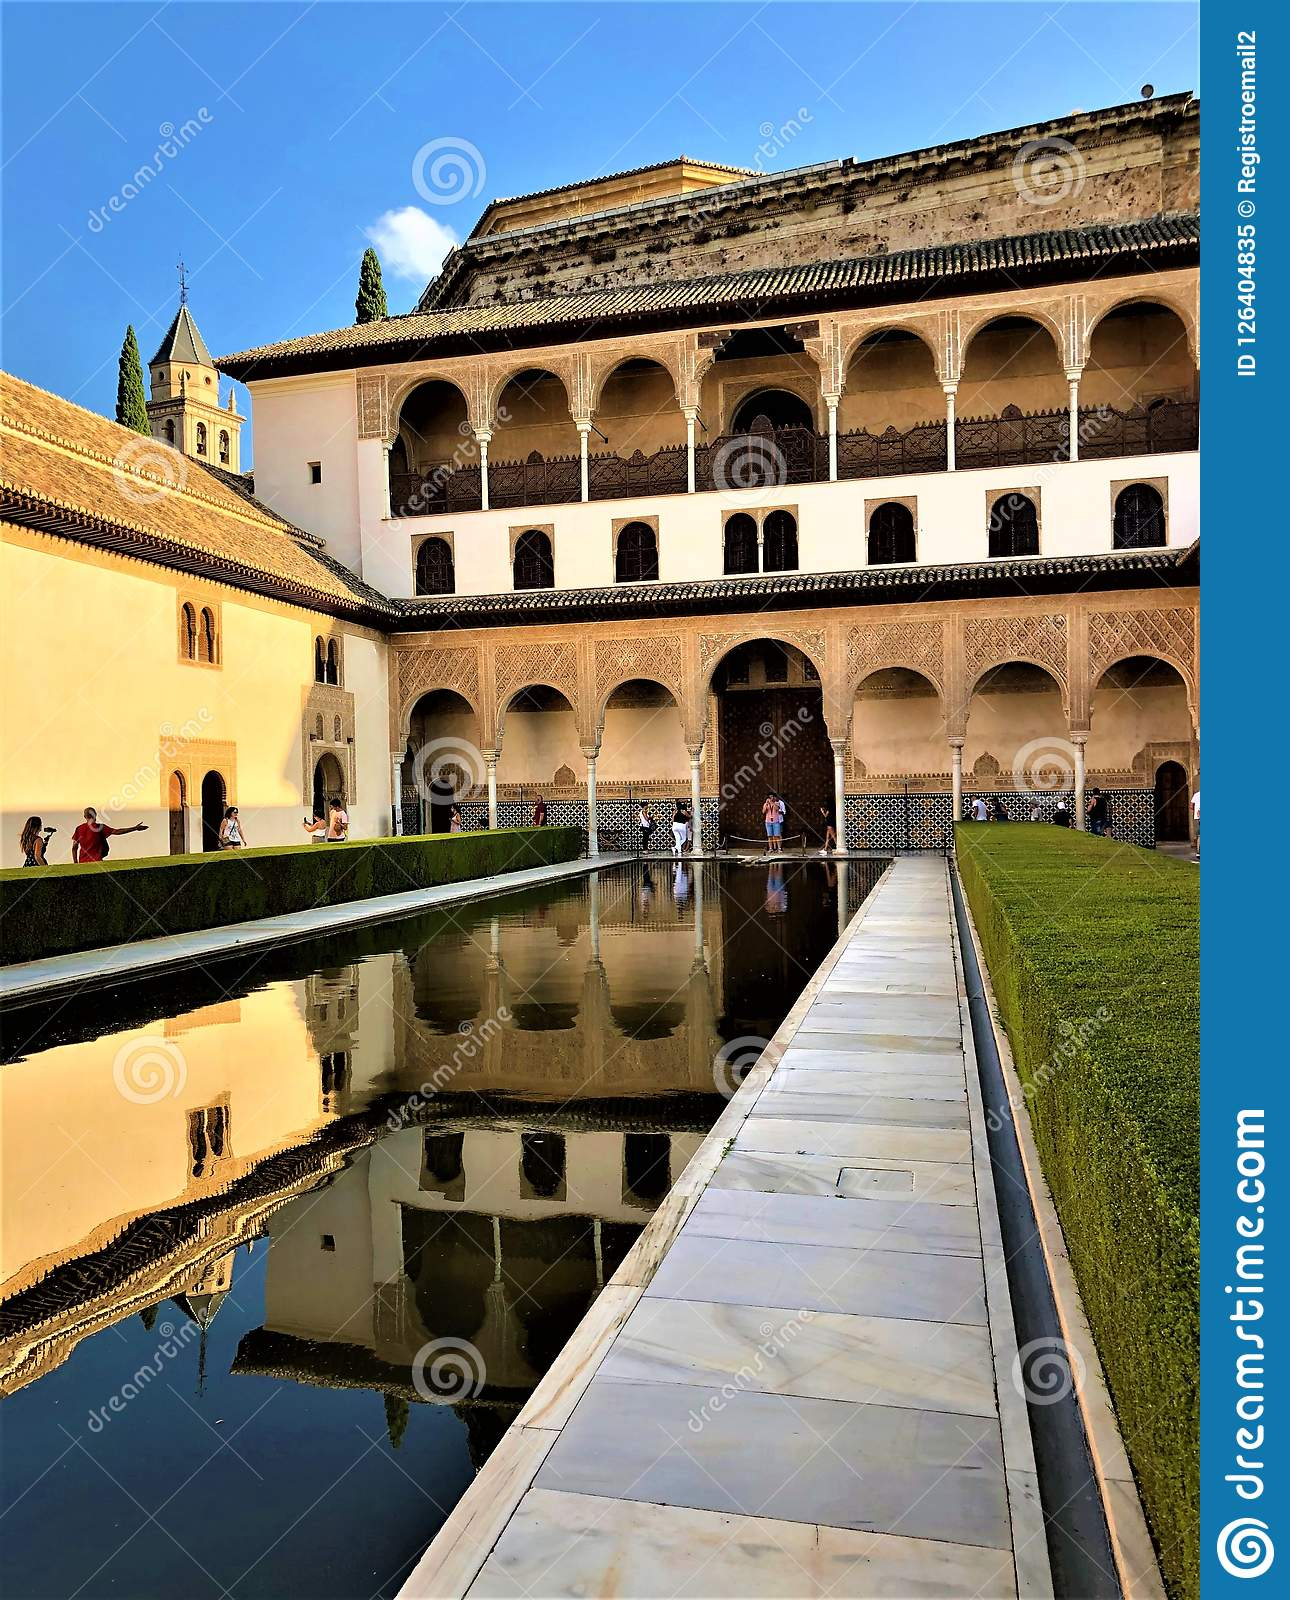 Alhambra in Granada, palace, garden and water